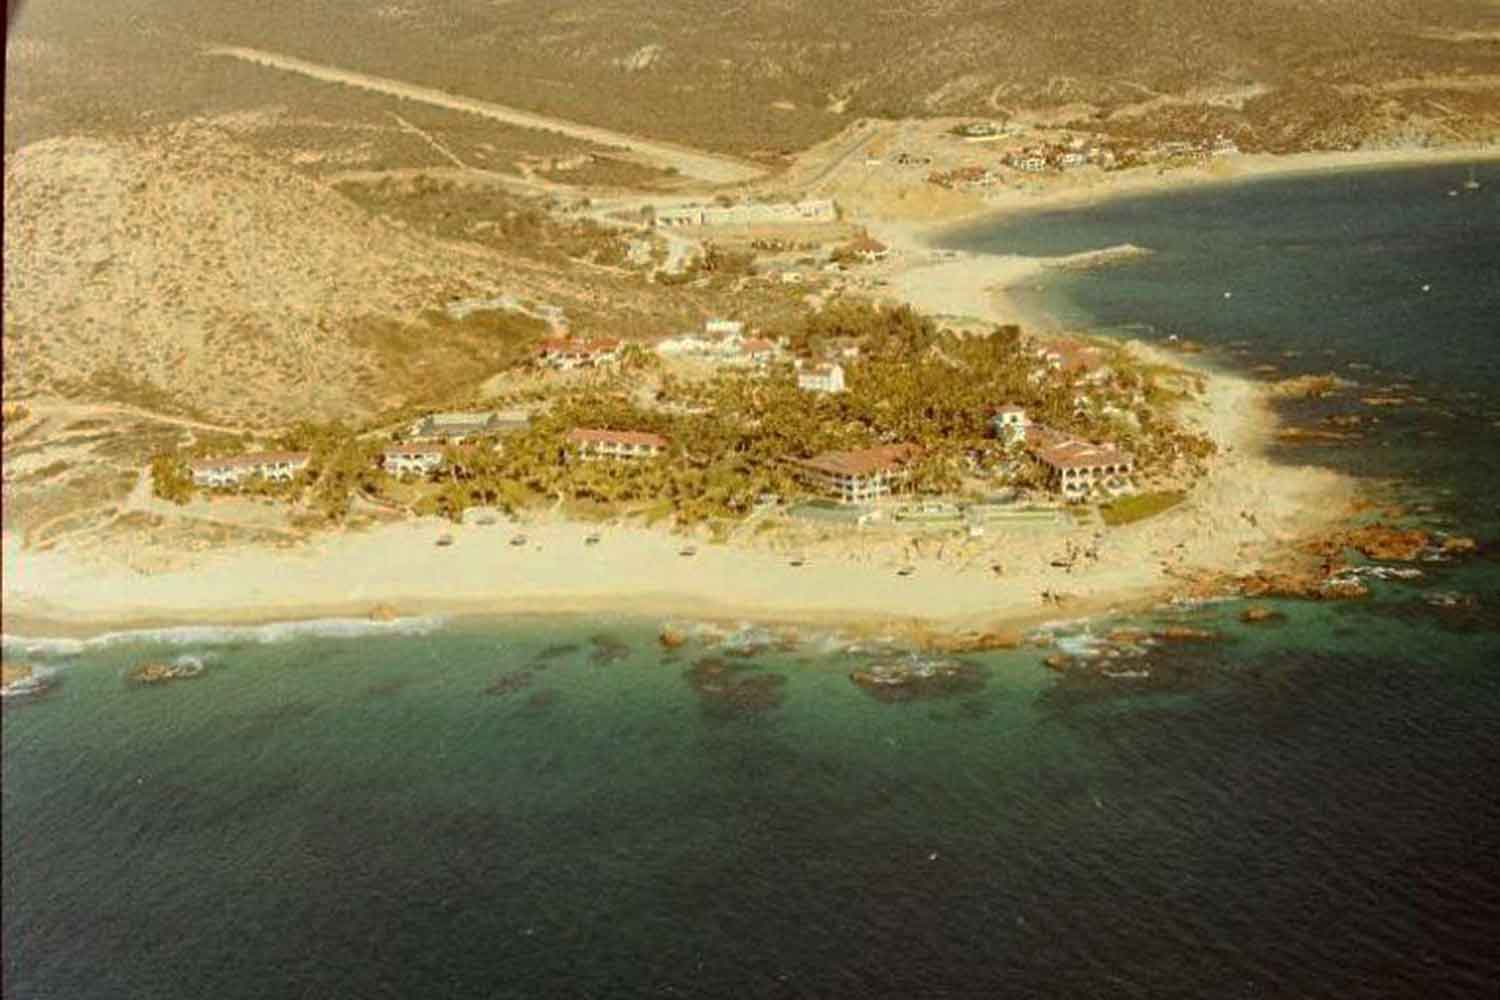 Hotel Palmilla San Jose del Cabo airstrip 1988. Photo Peterman